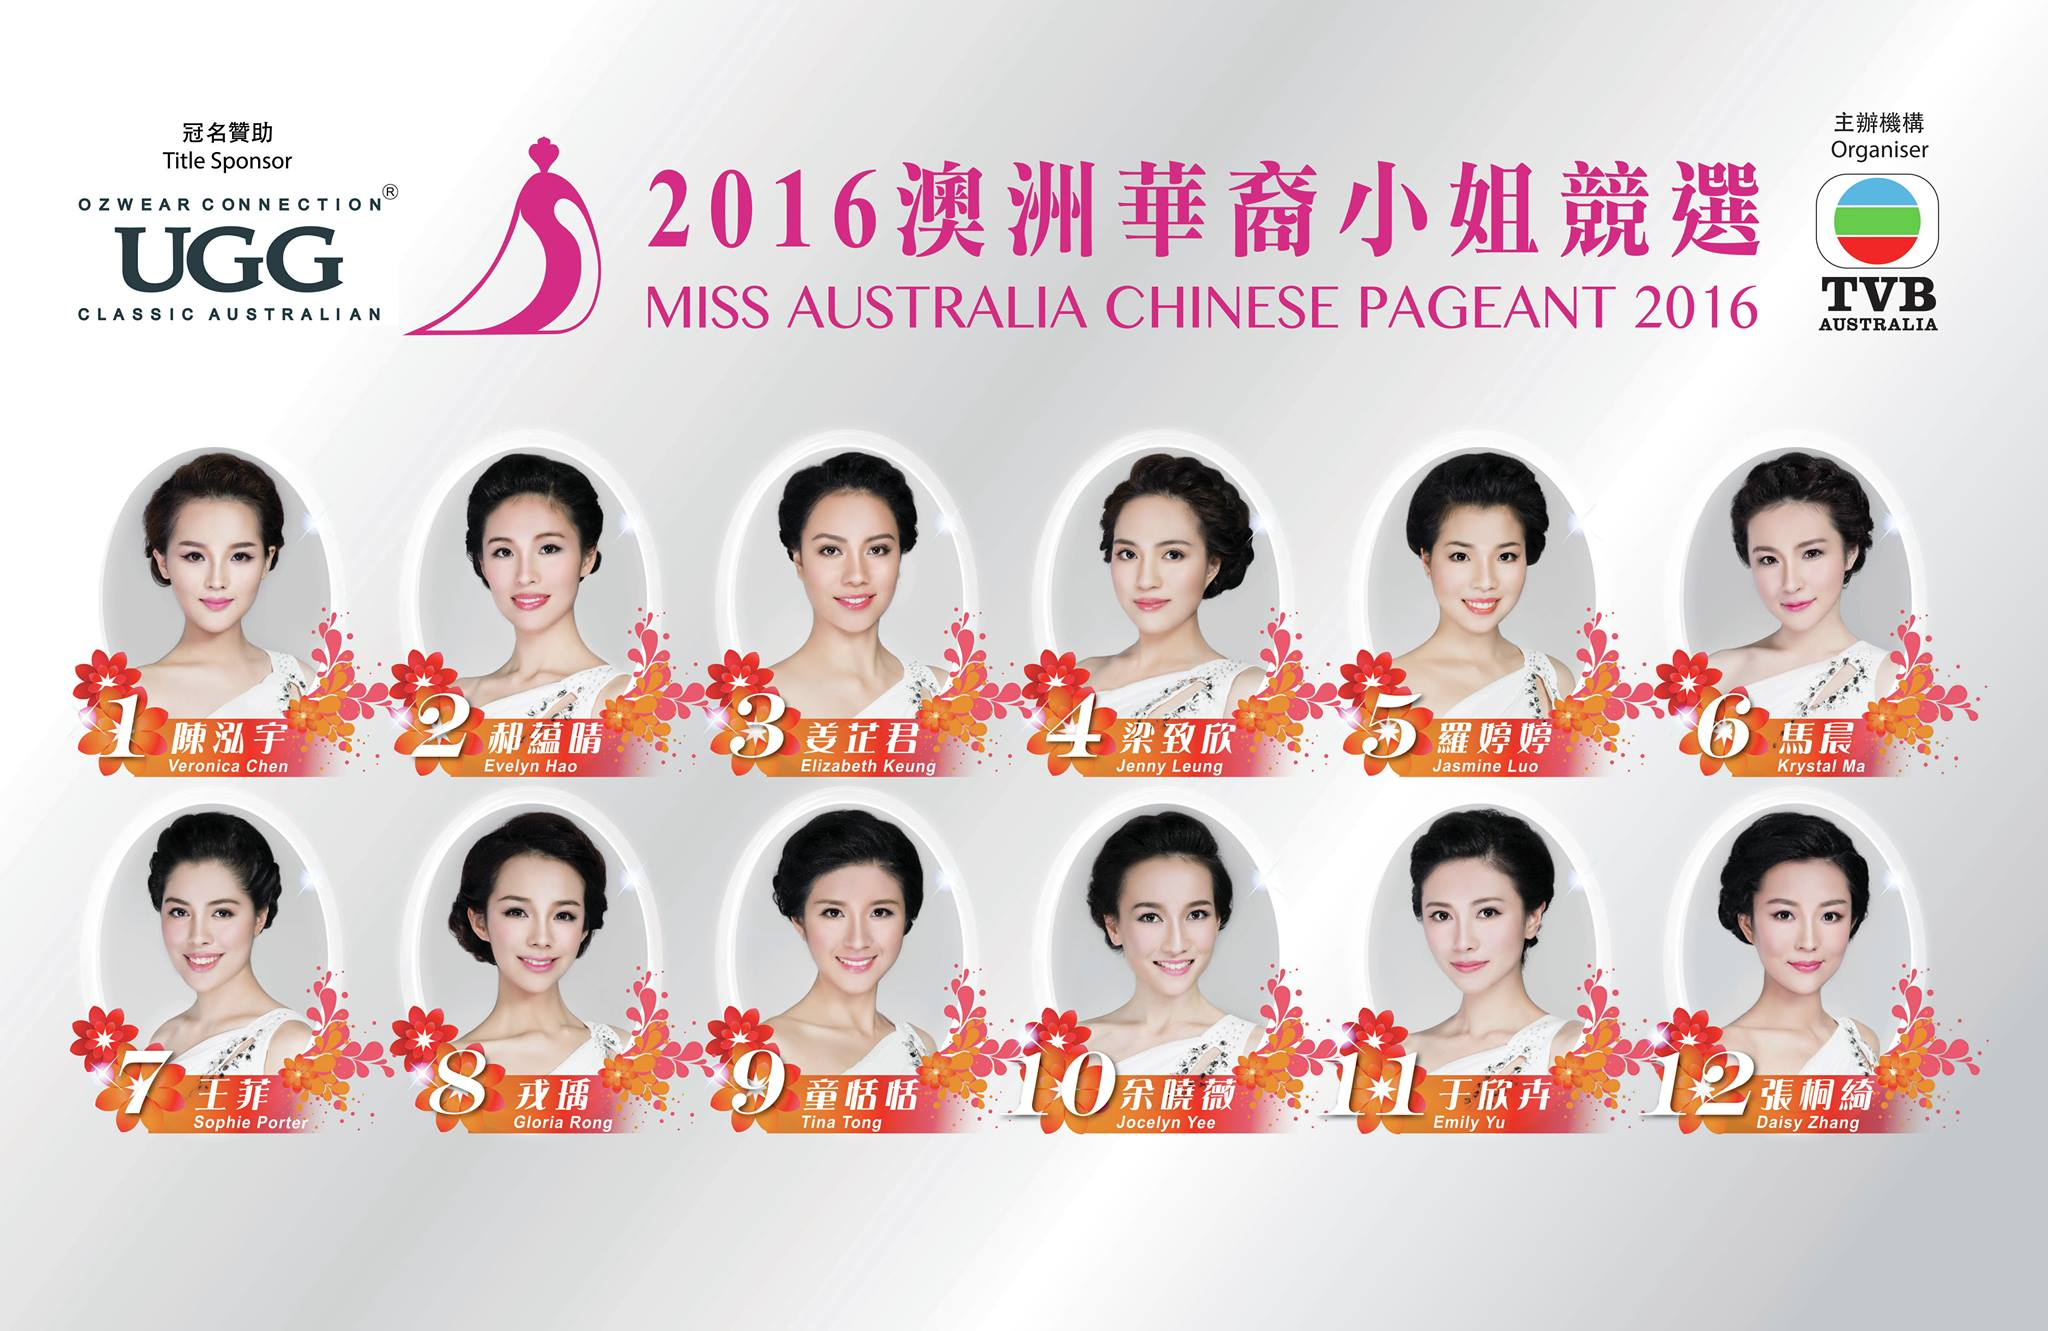 Miss Australia Chinese Pageant kicks off for 2016